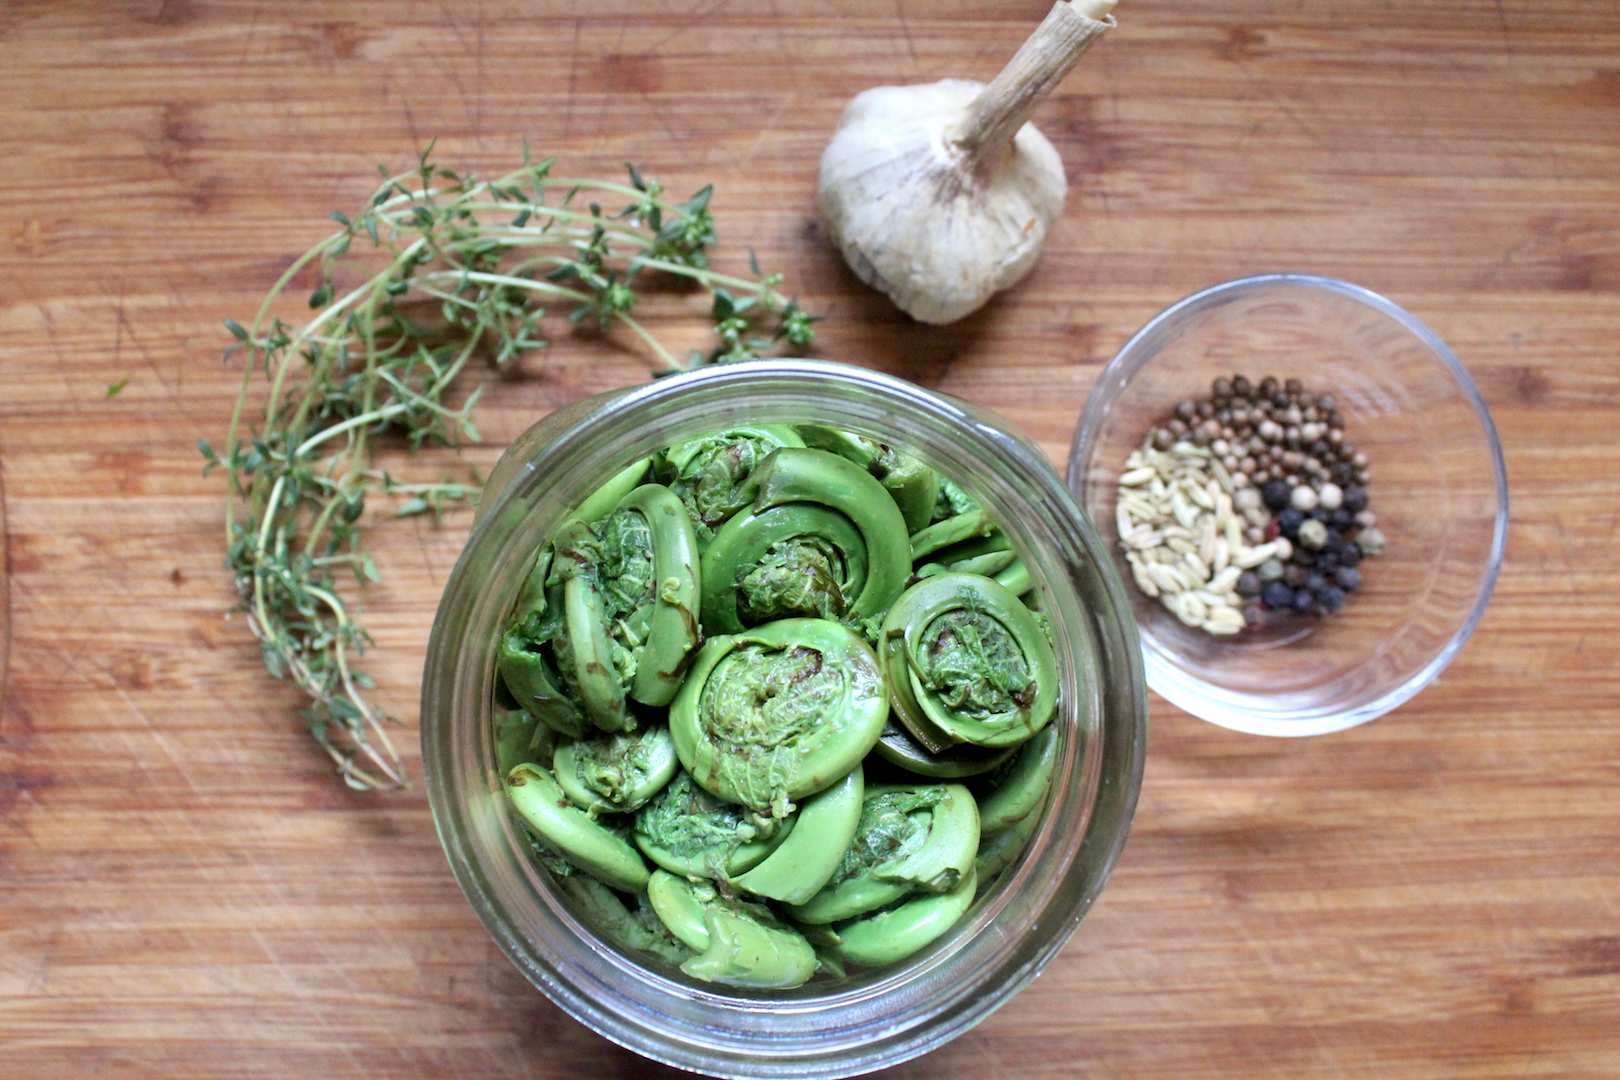 Pickled Fiddleheads Ingredients